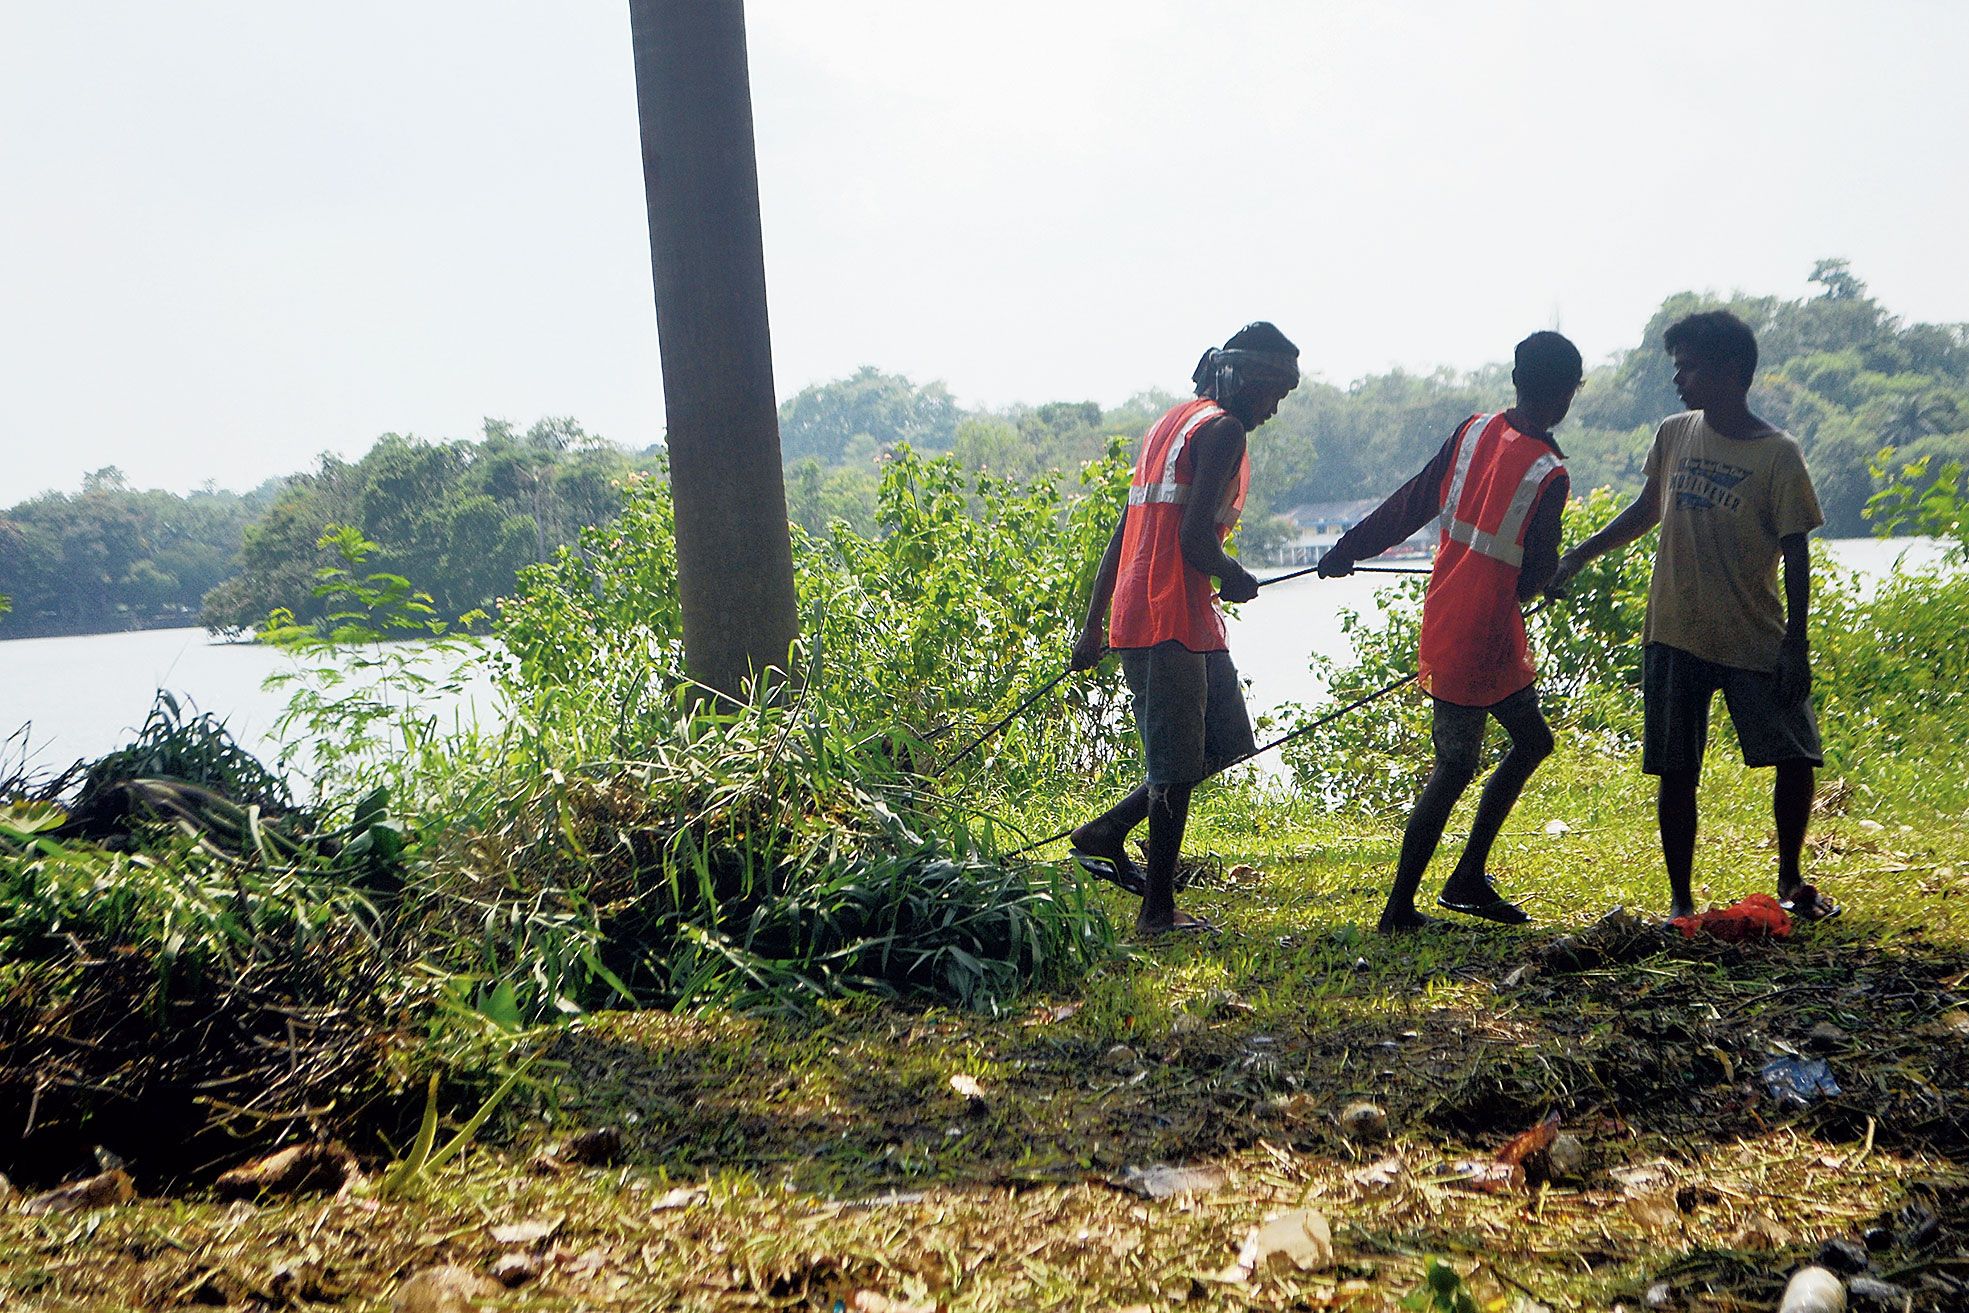 Jusco workers wrap up cleaning Jayanti Sarovar in Jubilee Park, Jamshedpur, on Saturday. The two-day angling contest will be held at the lake from July 29.